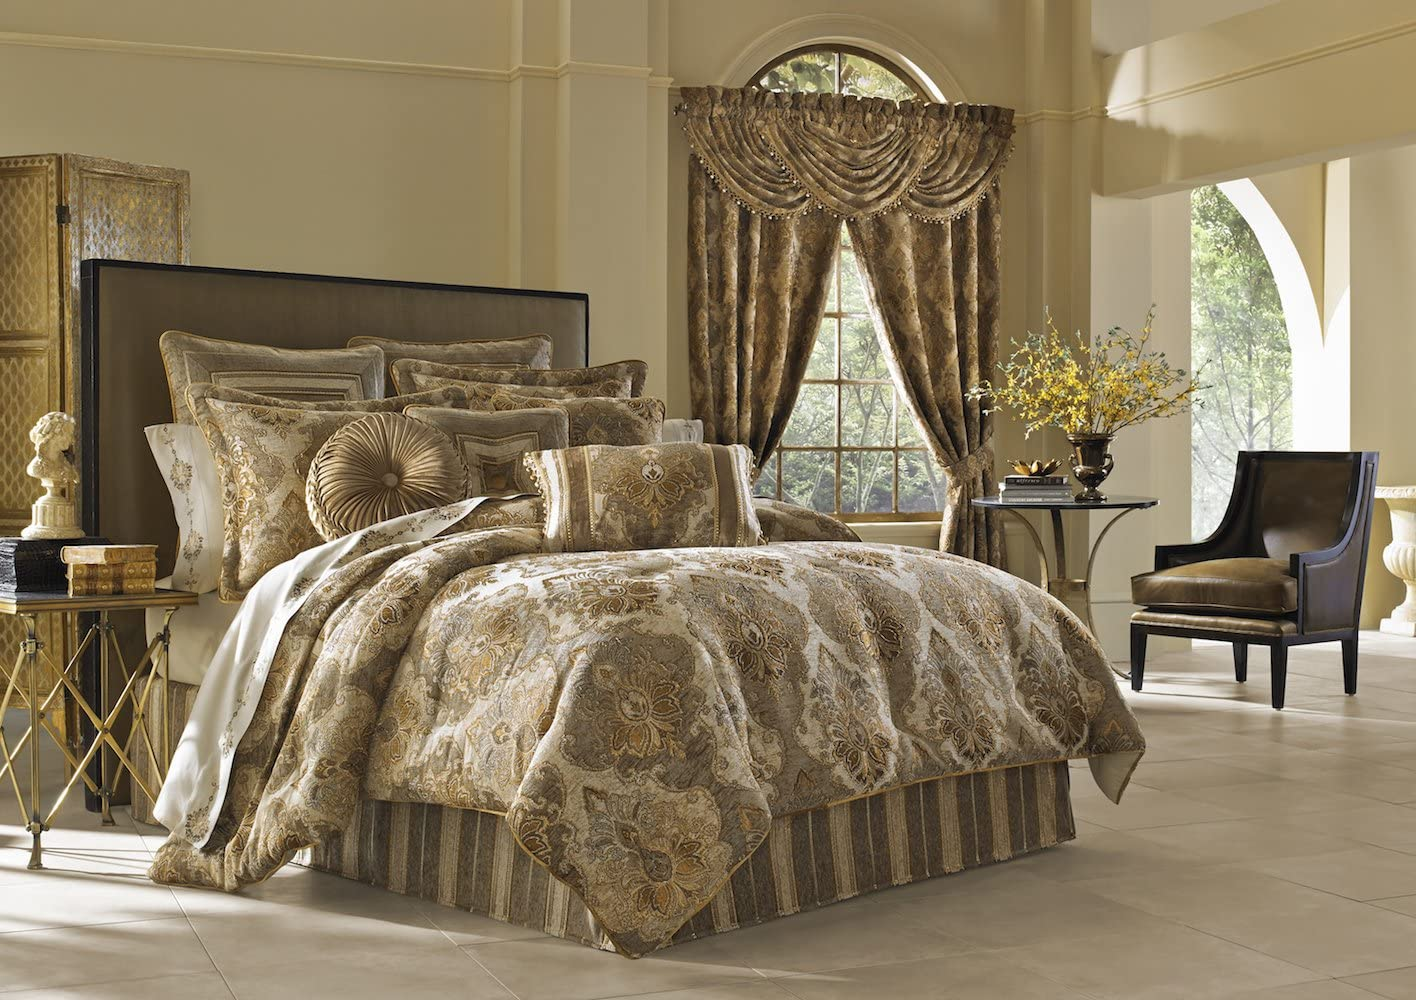 Amazon.com: JQUEEN Bradshaw Queen Comforter Set: Home & Kitchen